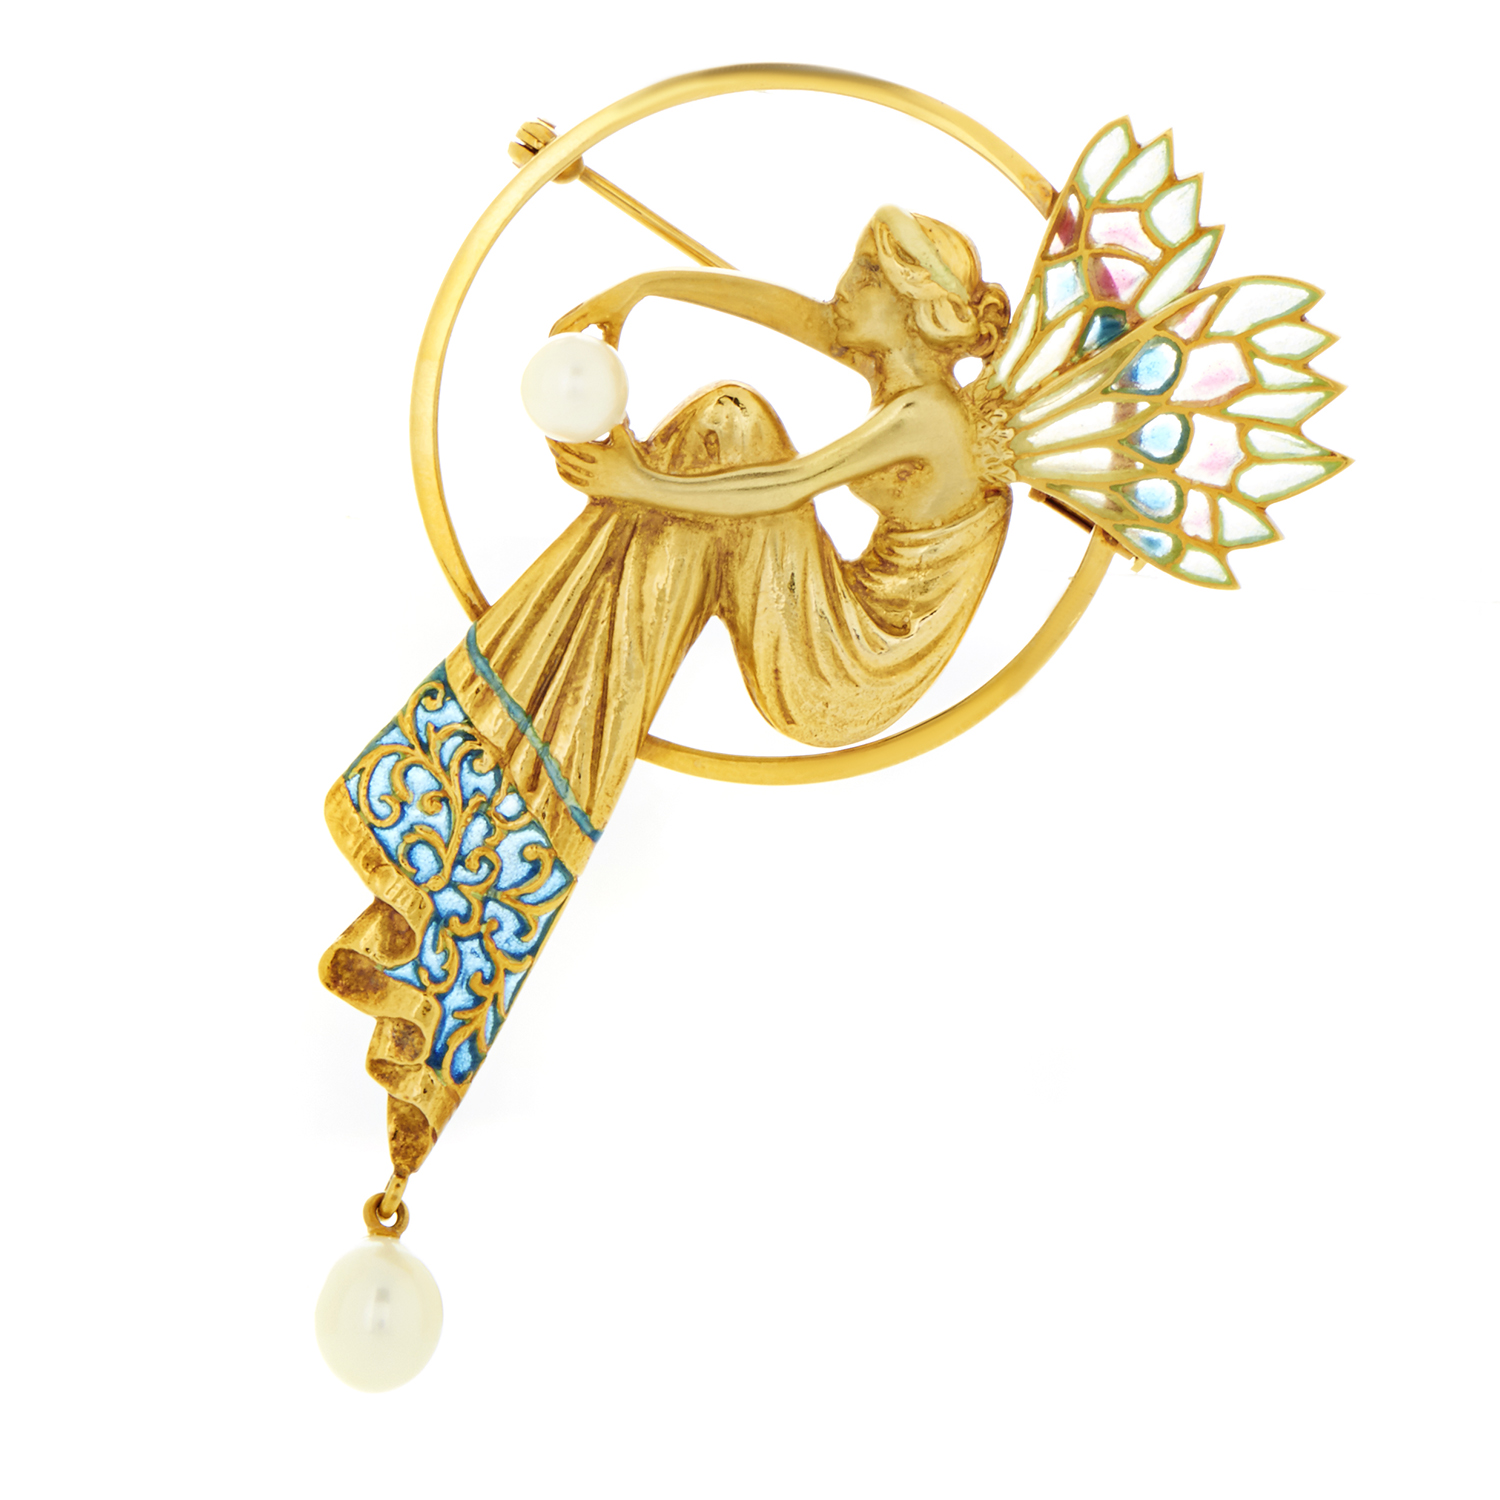 Masriera Women's Enameled 18K Yellow Gold & Pearl Pendant/Brooch